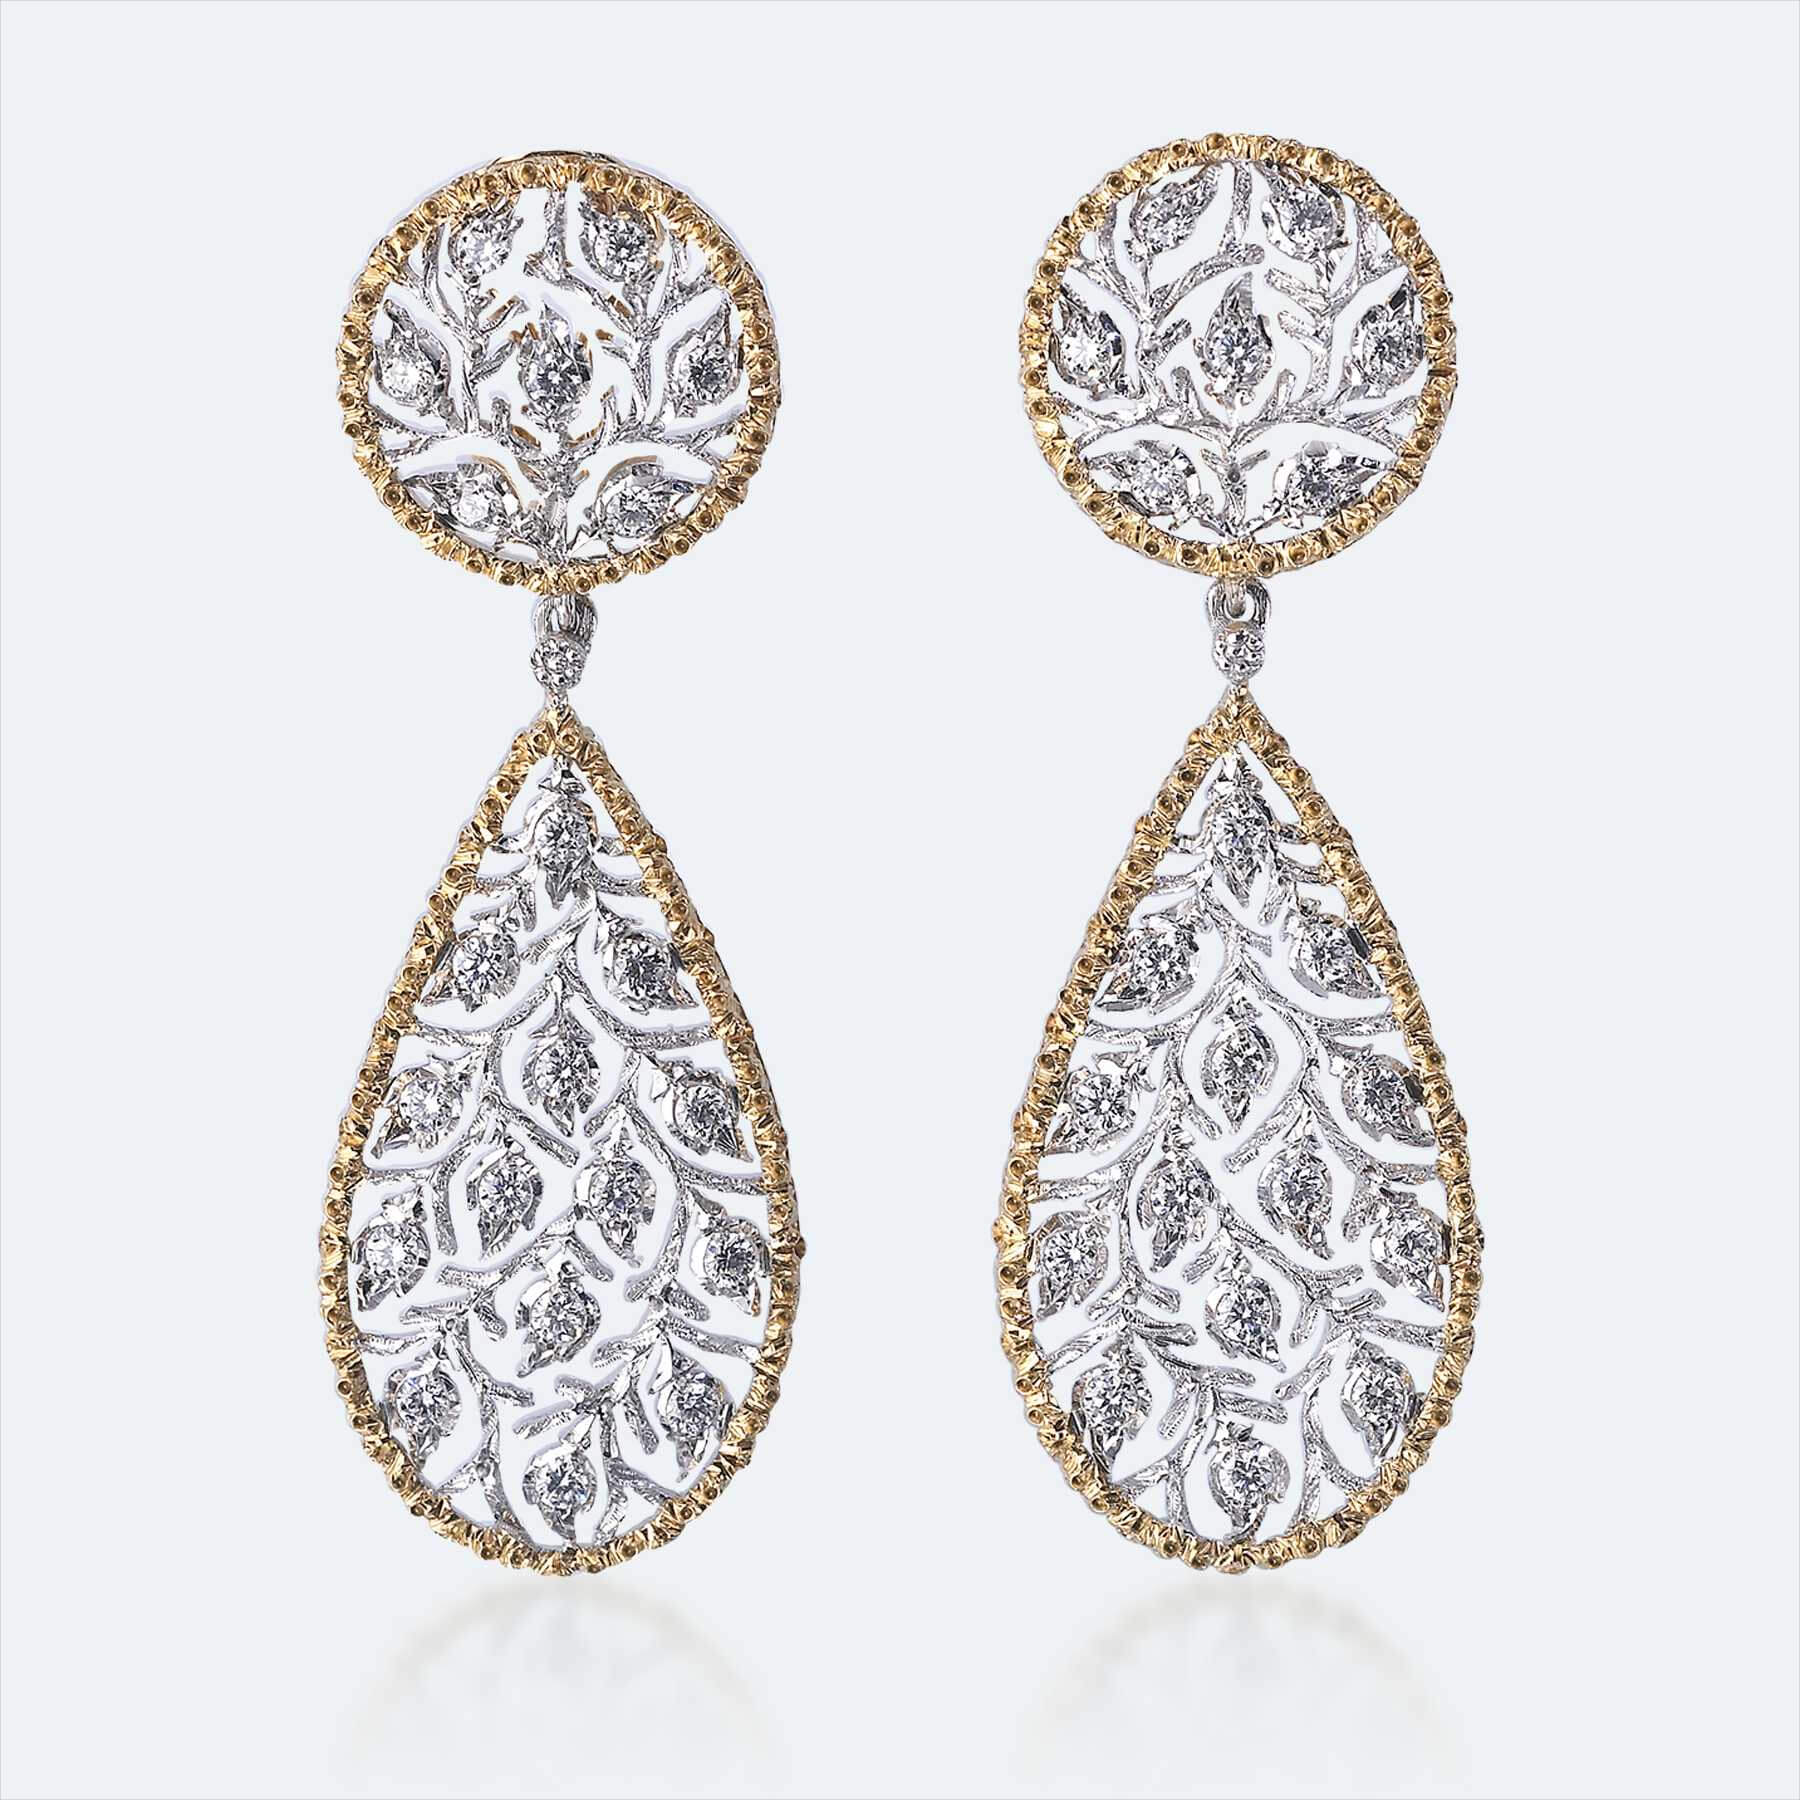 buccellati dimond earrings 1 - Earring Design Ideas